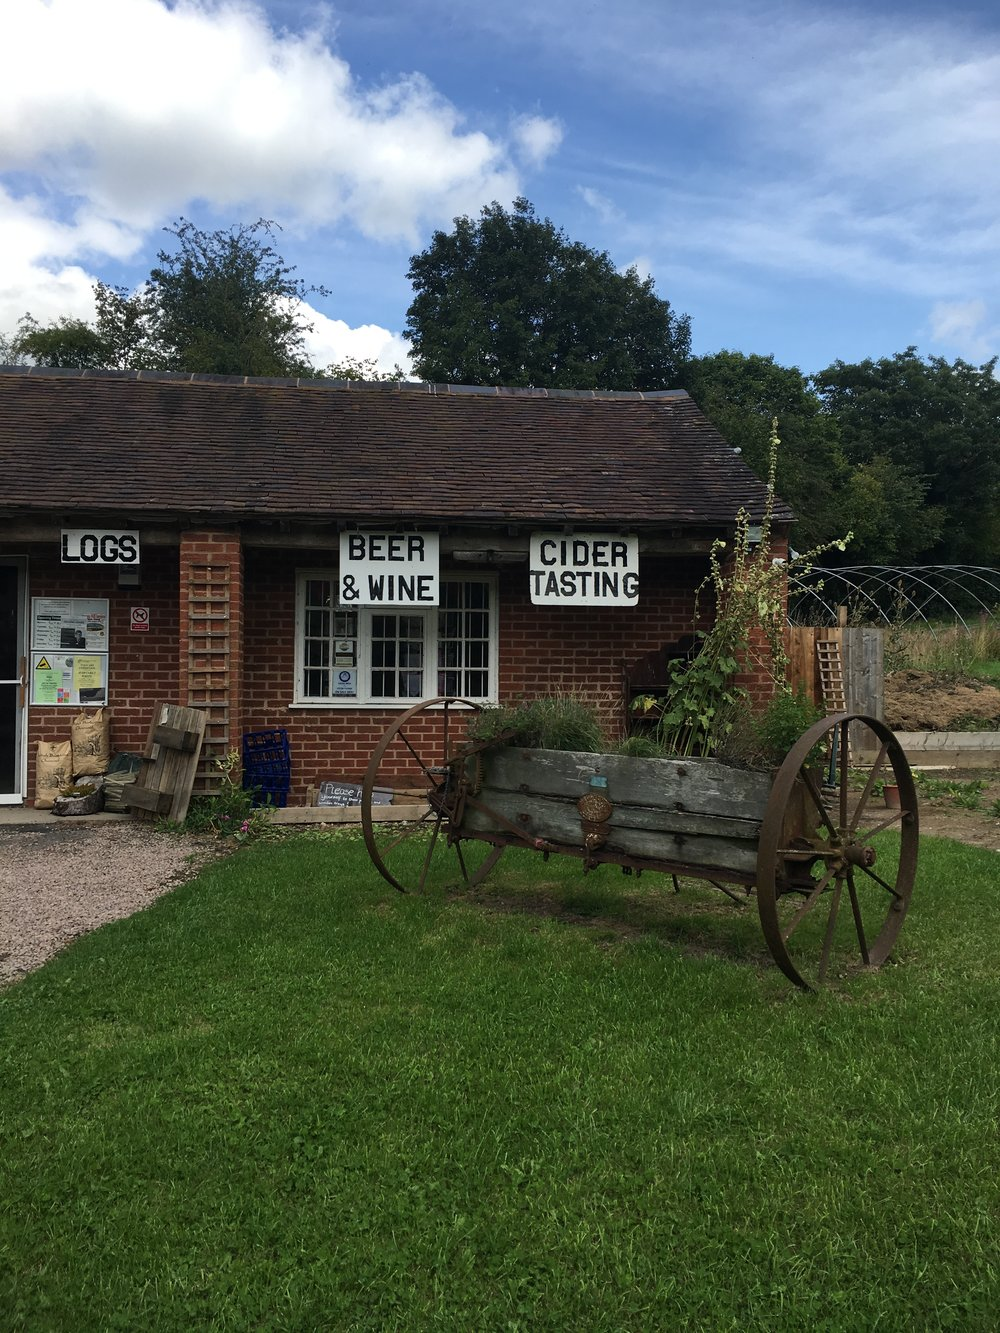 How cute is this quirky old farm shop? I love a farm shop but especially loved this one for its signage and old trailer display.